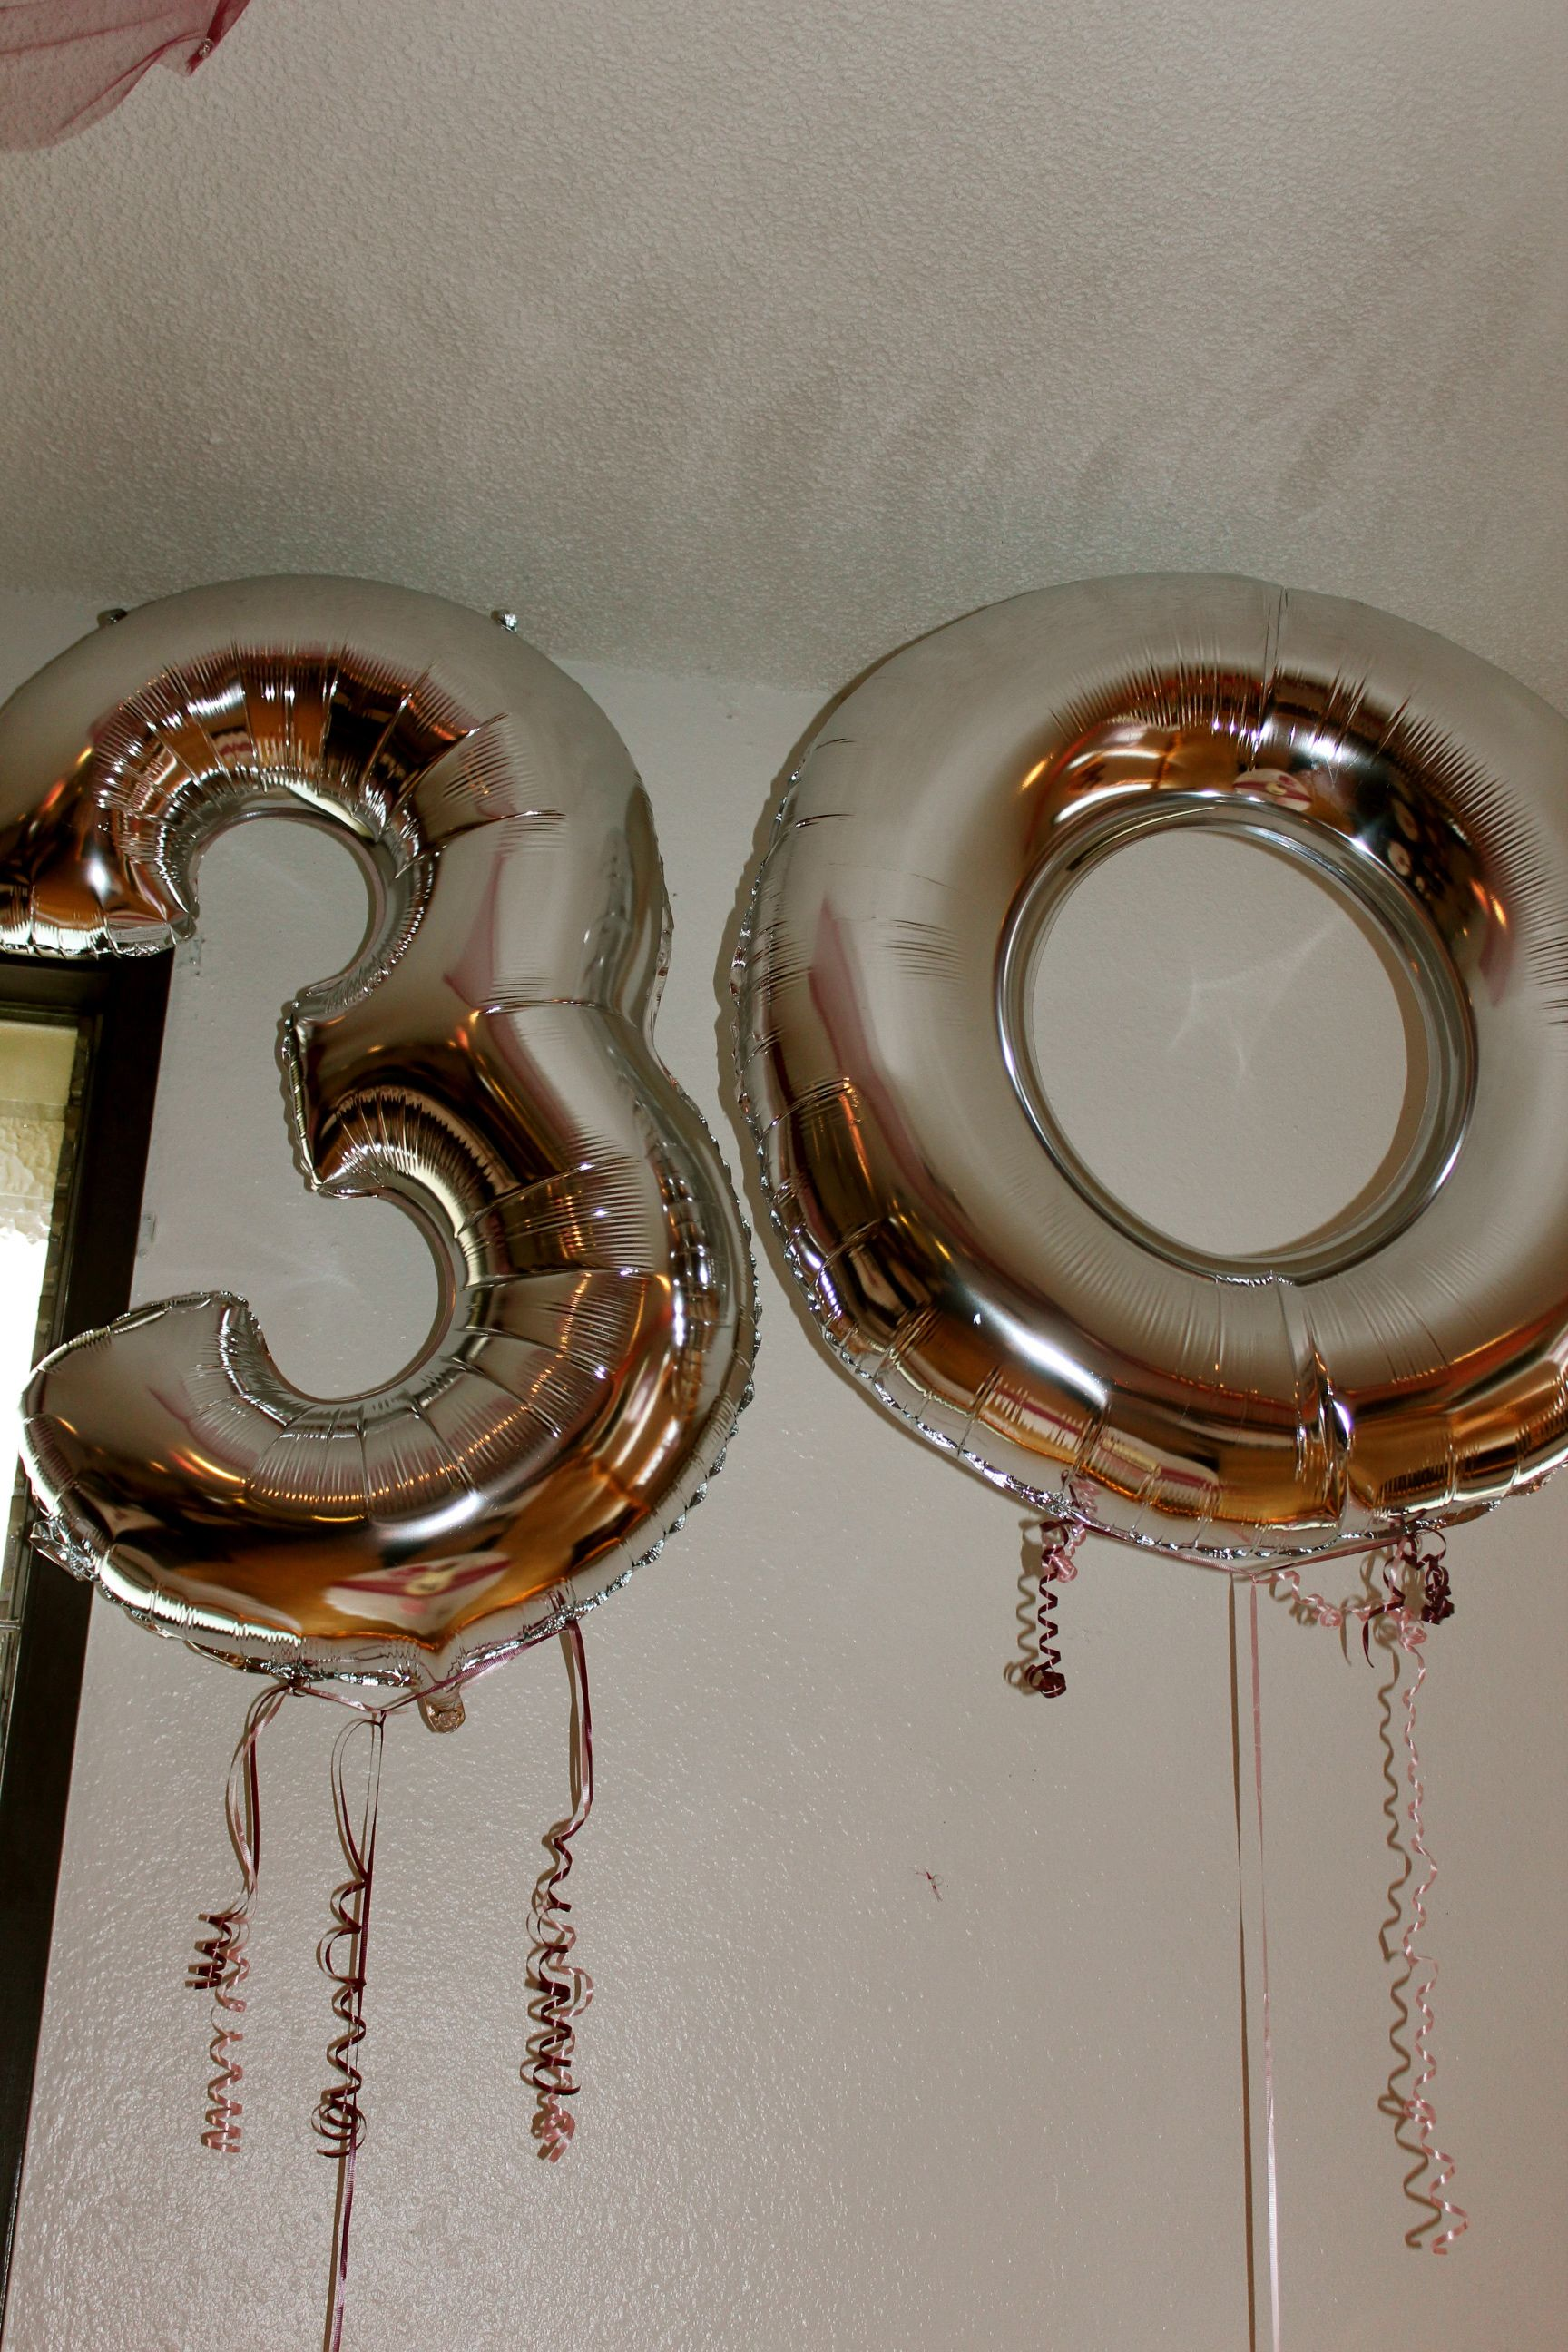 Pin By Hayley Beckman On Parents Surprise 30th Wedding Anniversary 30 Year Anniversary Ideas 30th Wedding Anniversary 30 Year Anniversary